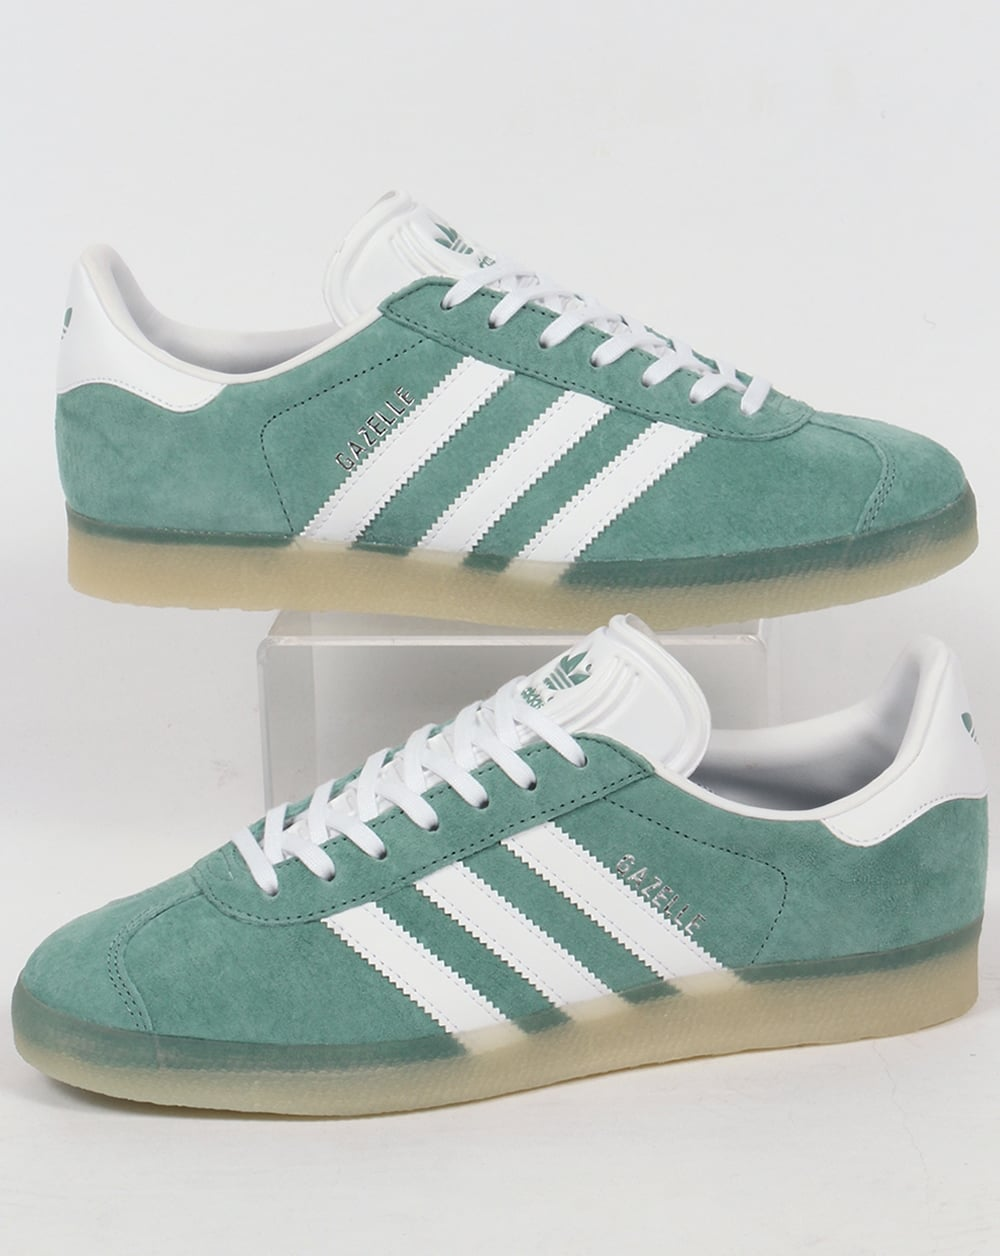 Adidas Gazelle Light Green